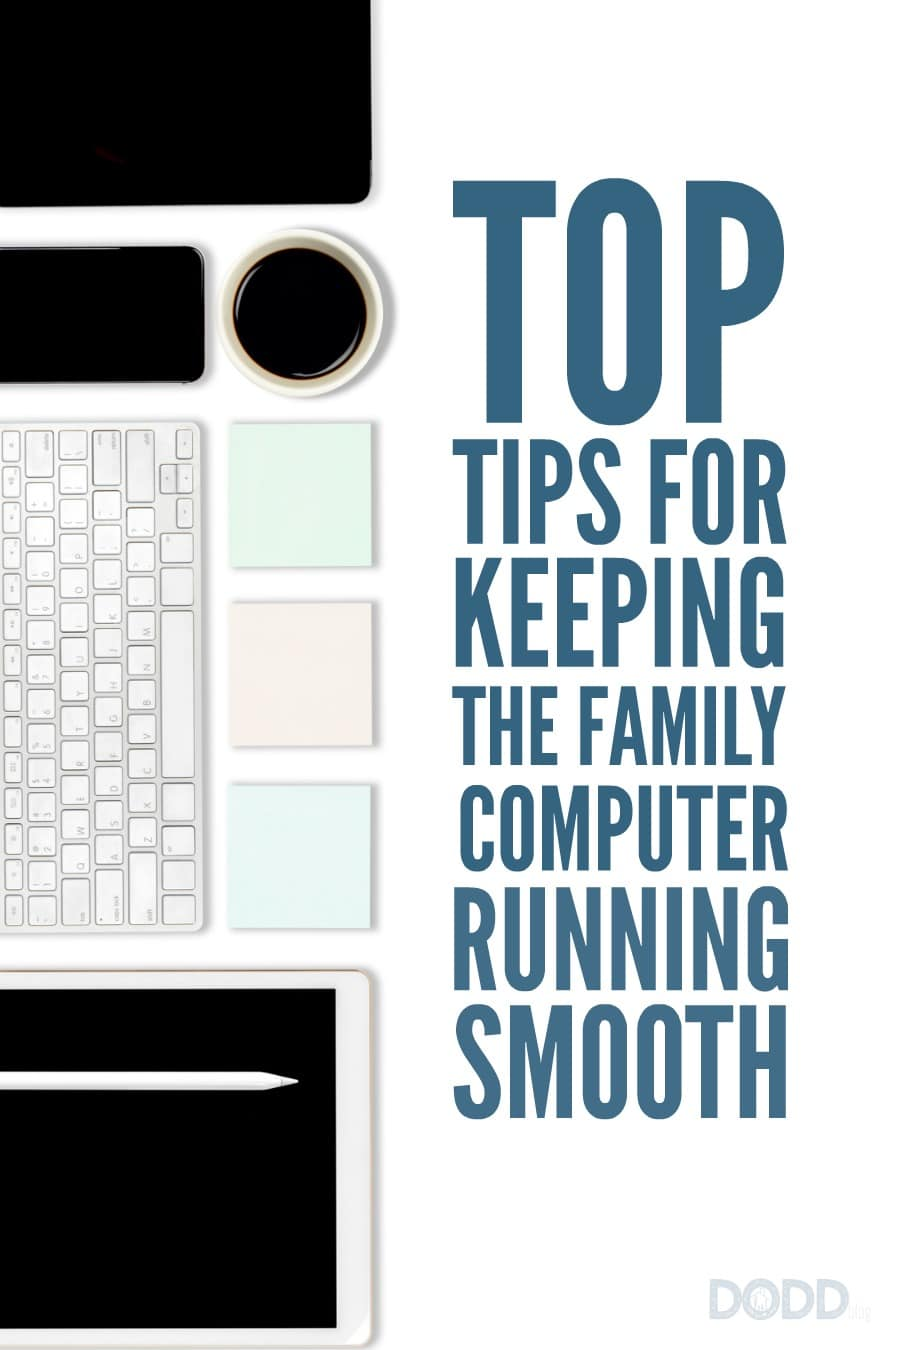 Talk to your kids about using the computer properly, offer advice and guidance and take a few moments to clean the monitor and keyboard at the end of the day.